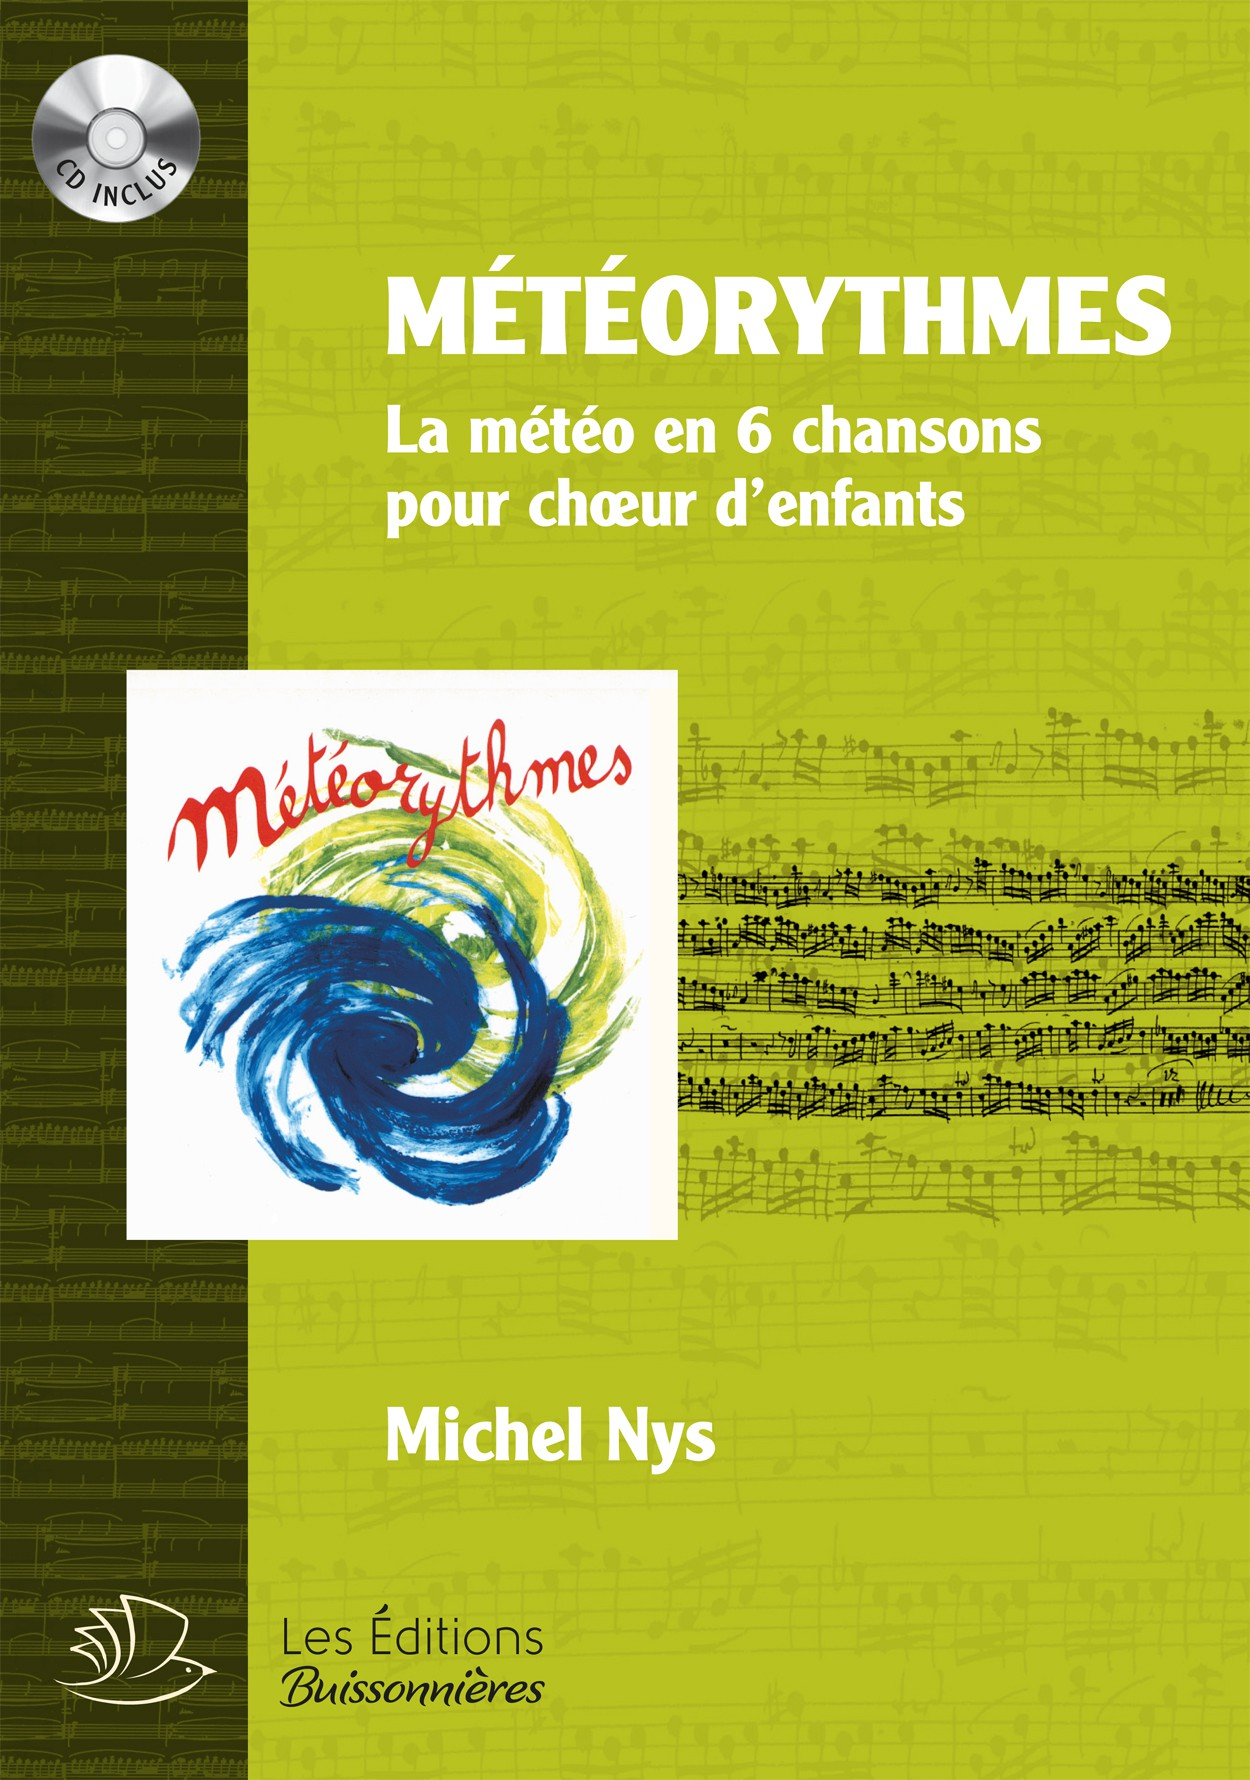 Partitions Météorythmes, Michel Nys